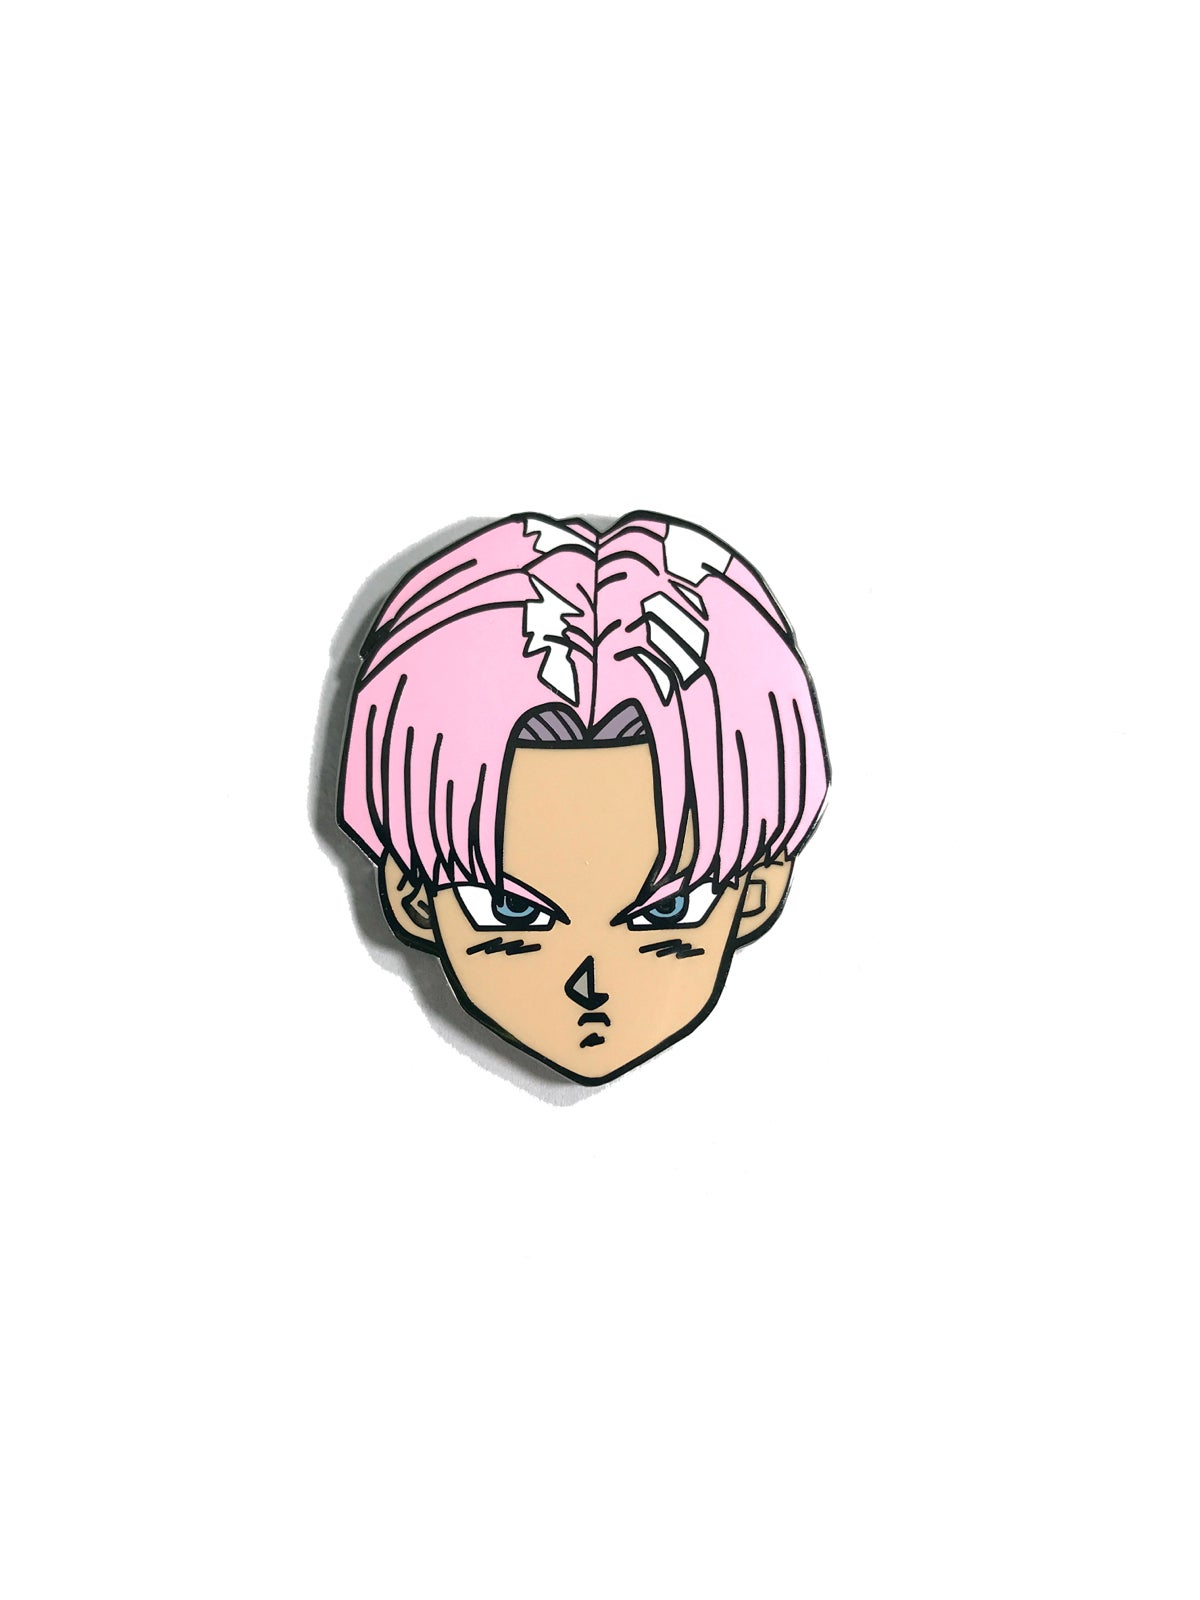 The Boy From the Future Hard Enamel Pin